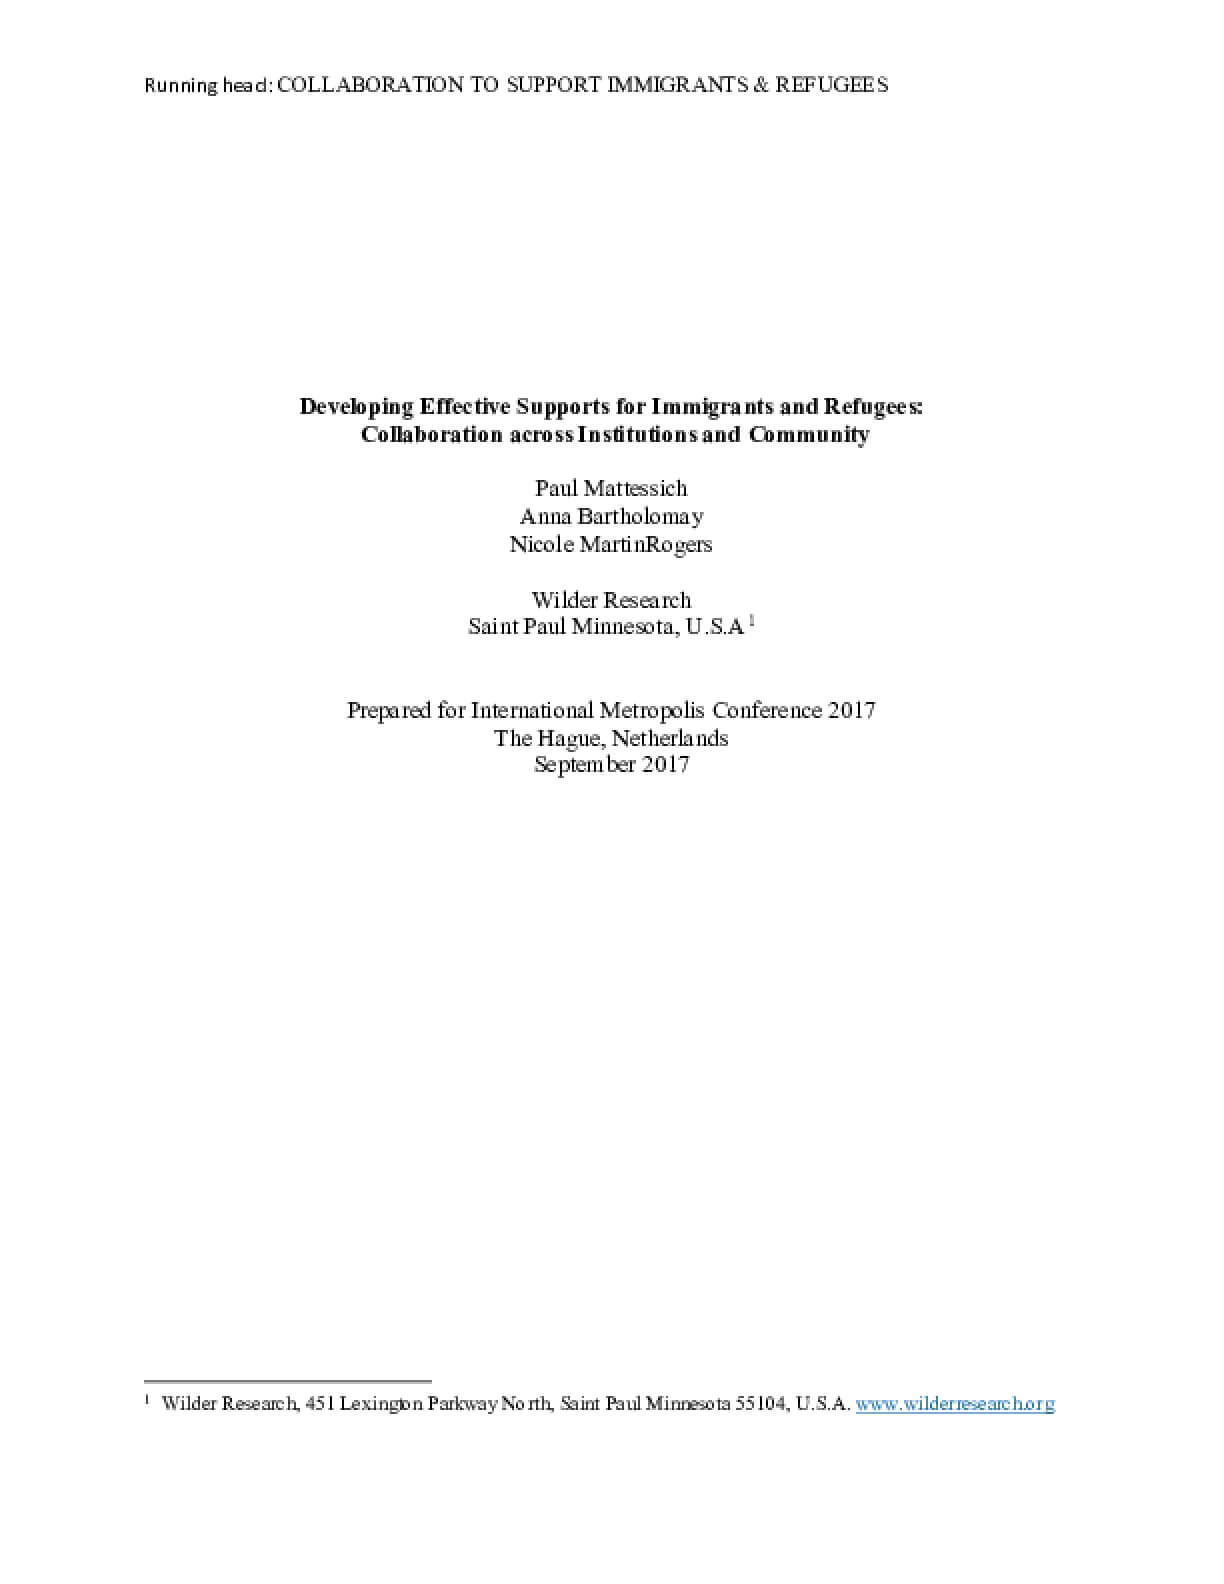 Developing Effective Supports for Immigrants and Refugees: Collaboration across Institutions and Community